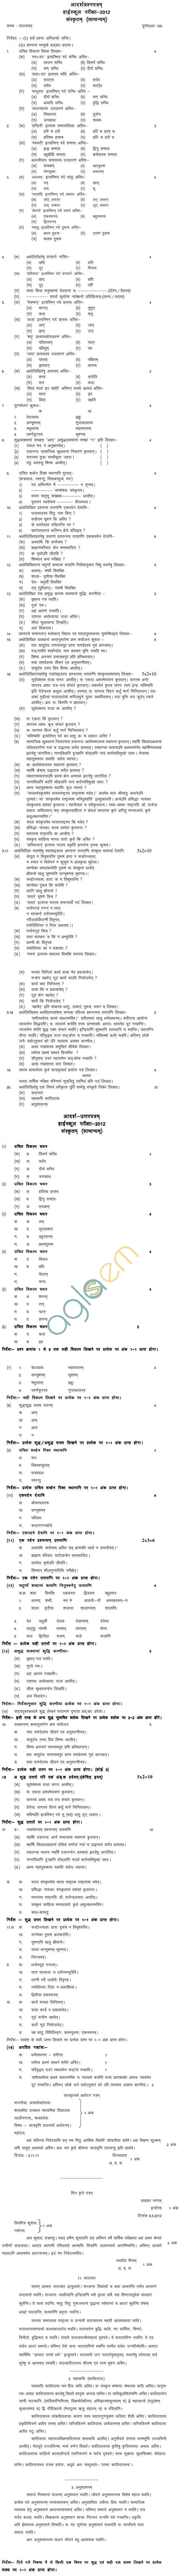 MP Board Class X Sanskrit General Model Questions & Answers - Set 2